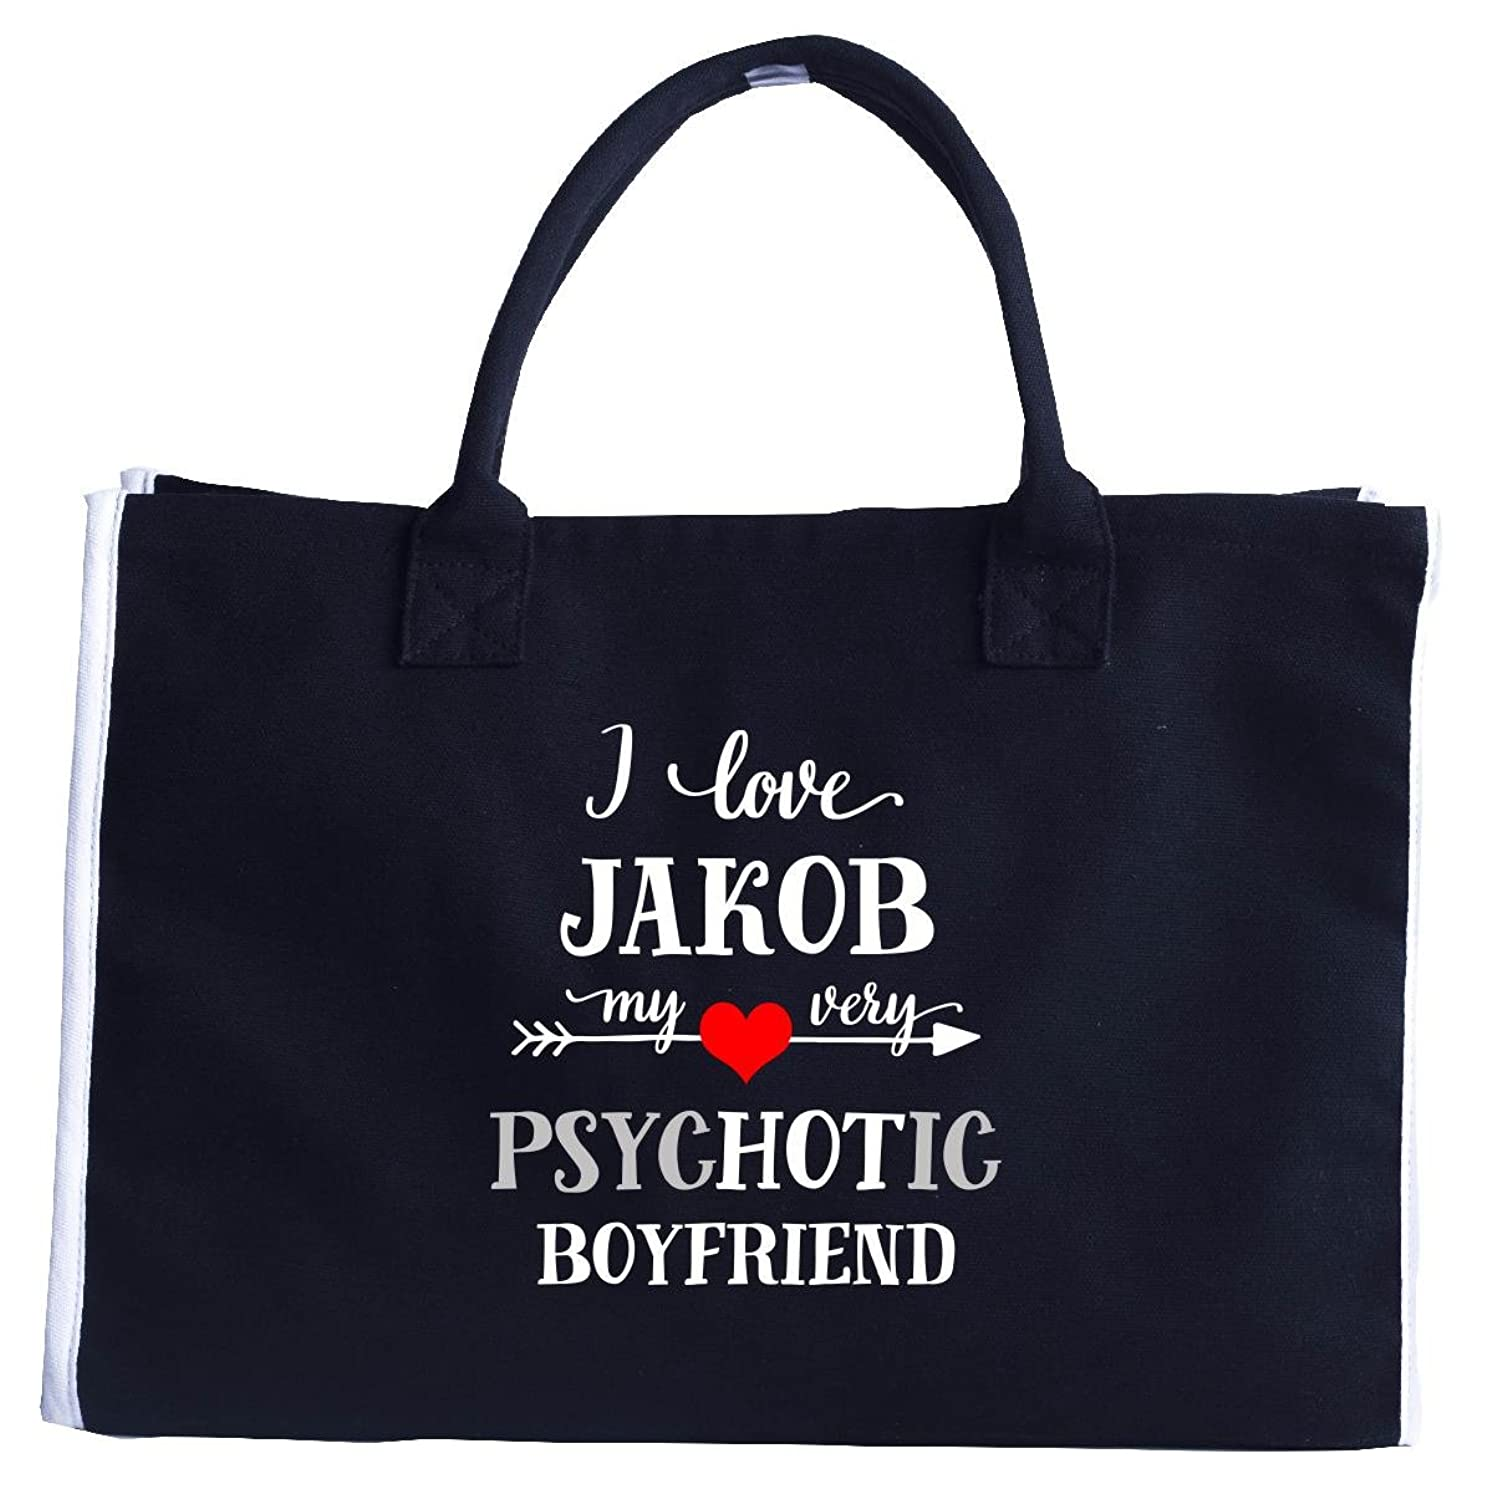 I Love Jakob My Very Psychotic Boyfriend. Gift For Her - Fashion Tote Bag